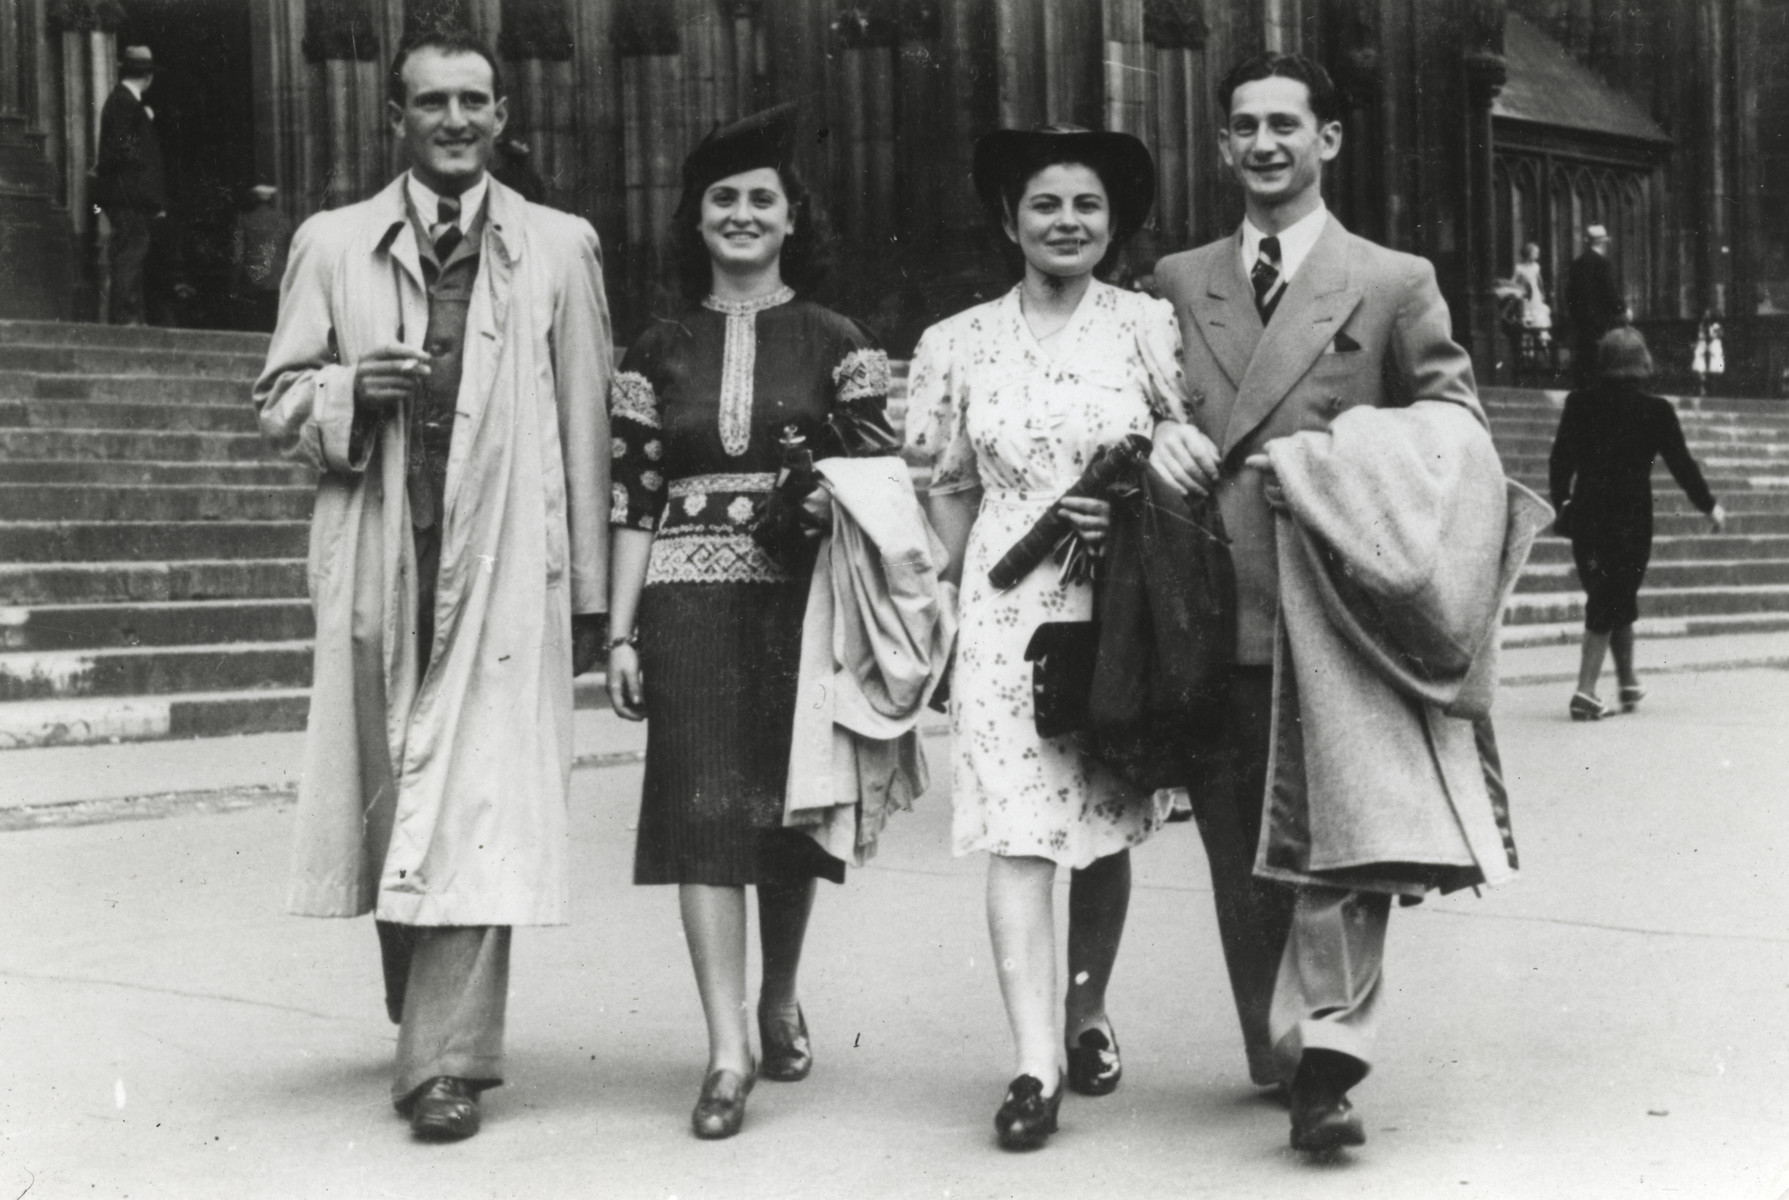 Two Jewish couples walk down a street in Bonn, Germany.  On the left are Herbert and Ruth Meyer who were later deported to Auschwitz.